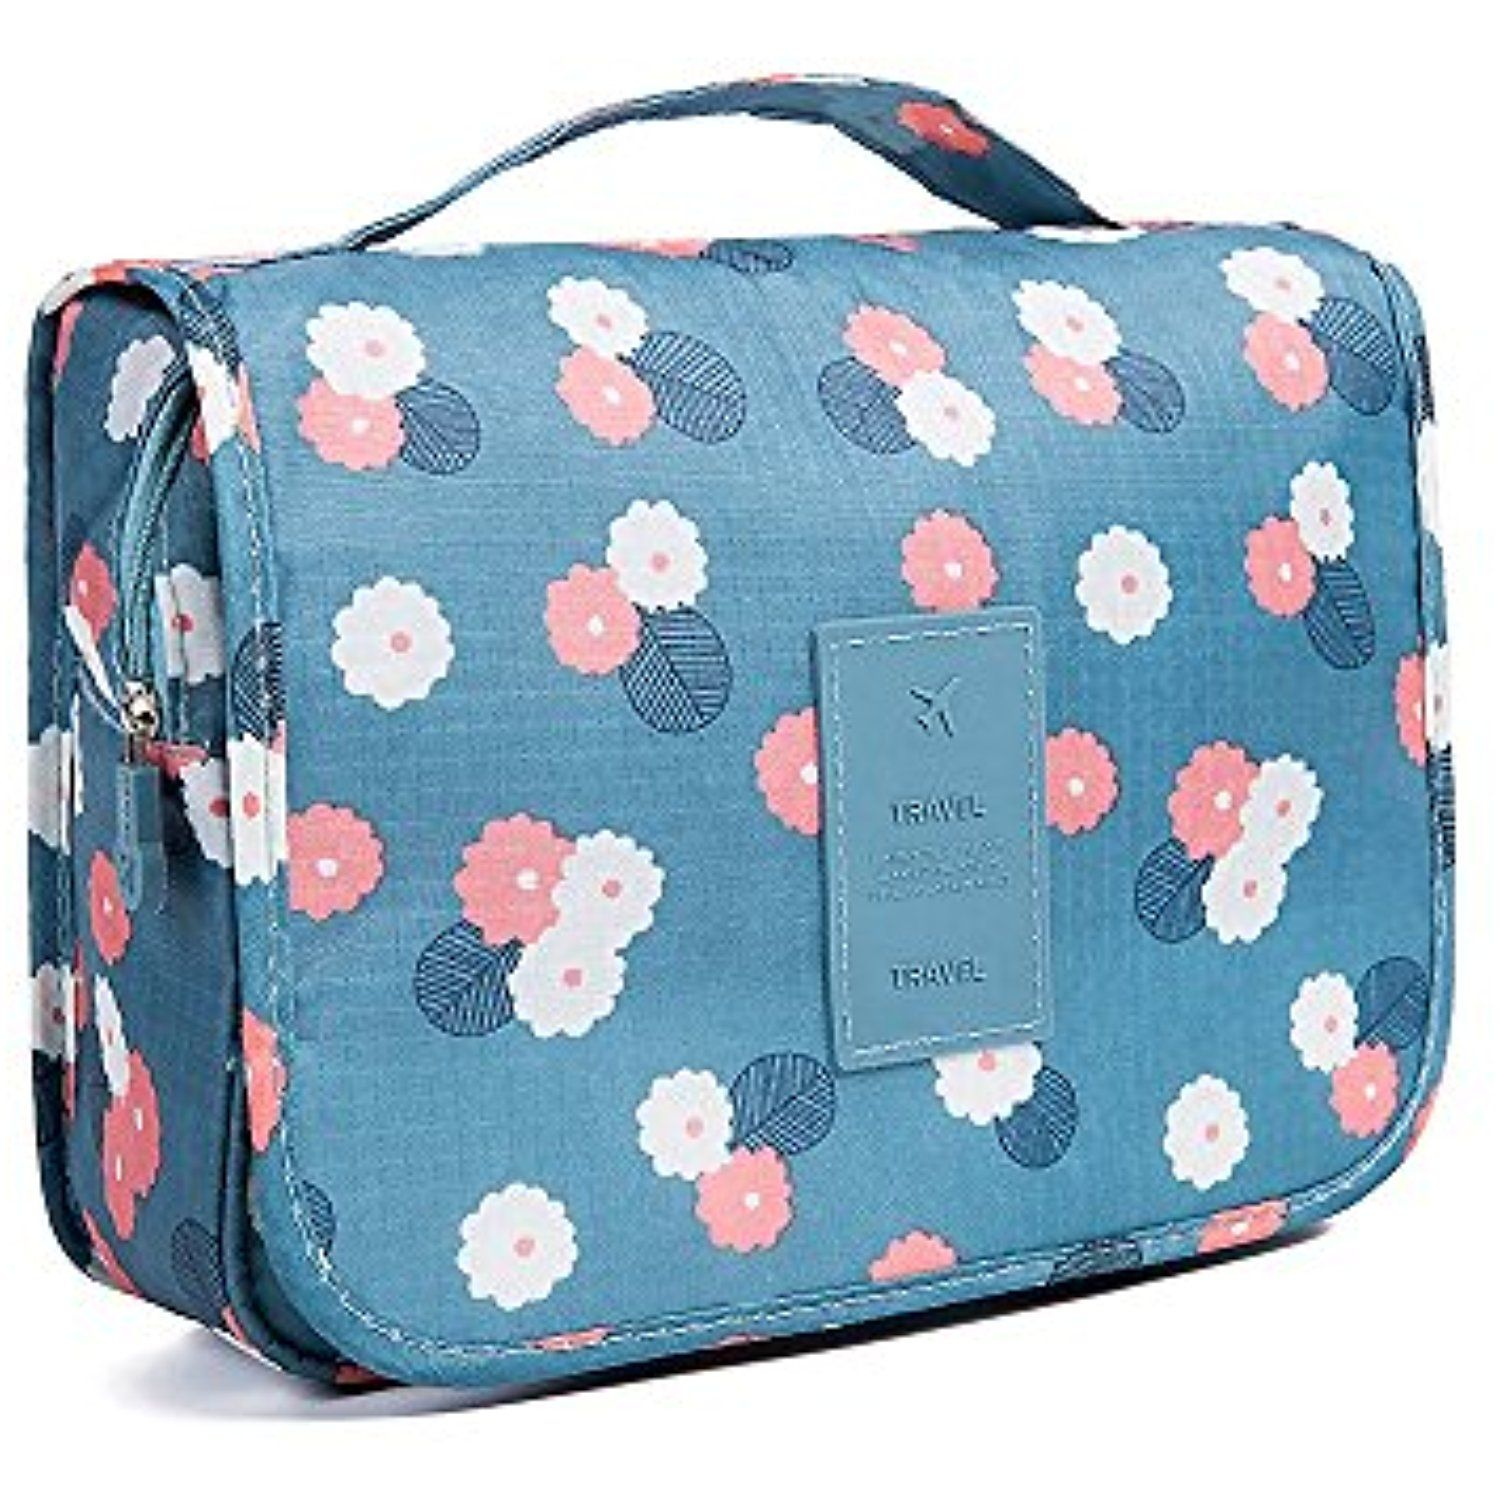 QMARK Hanging Cosmetic Travel Bag Organizer with Zipper Portable ...